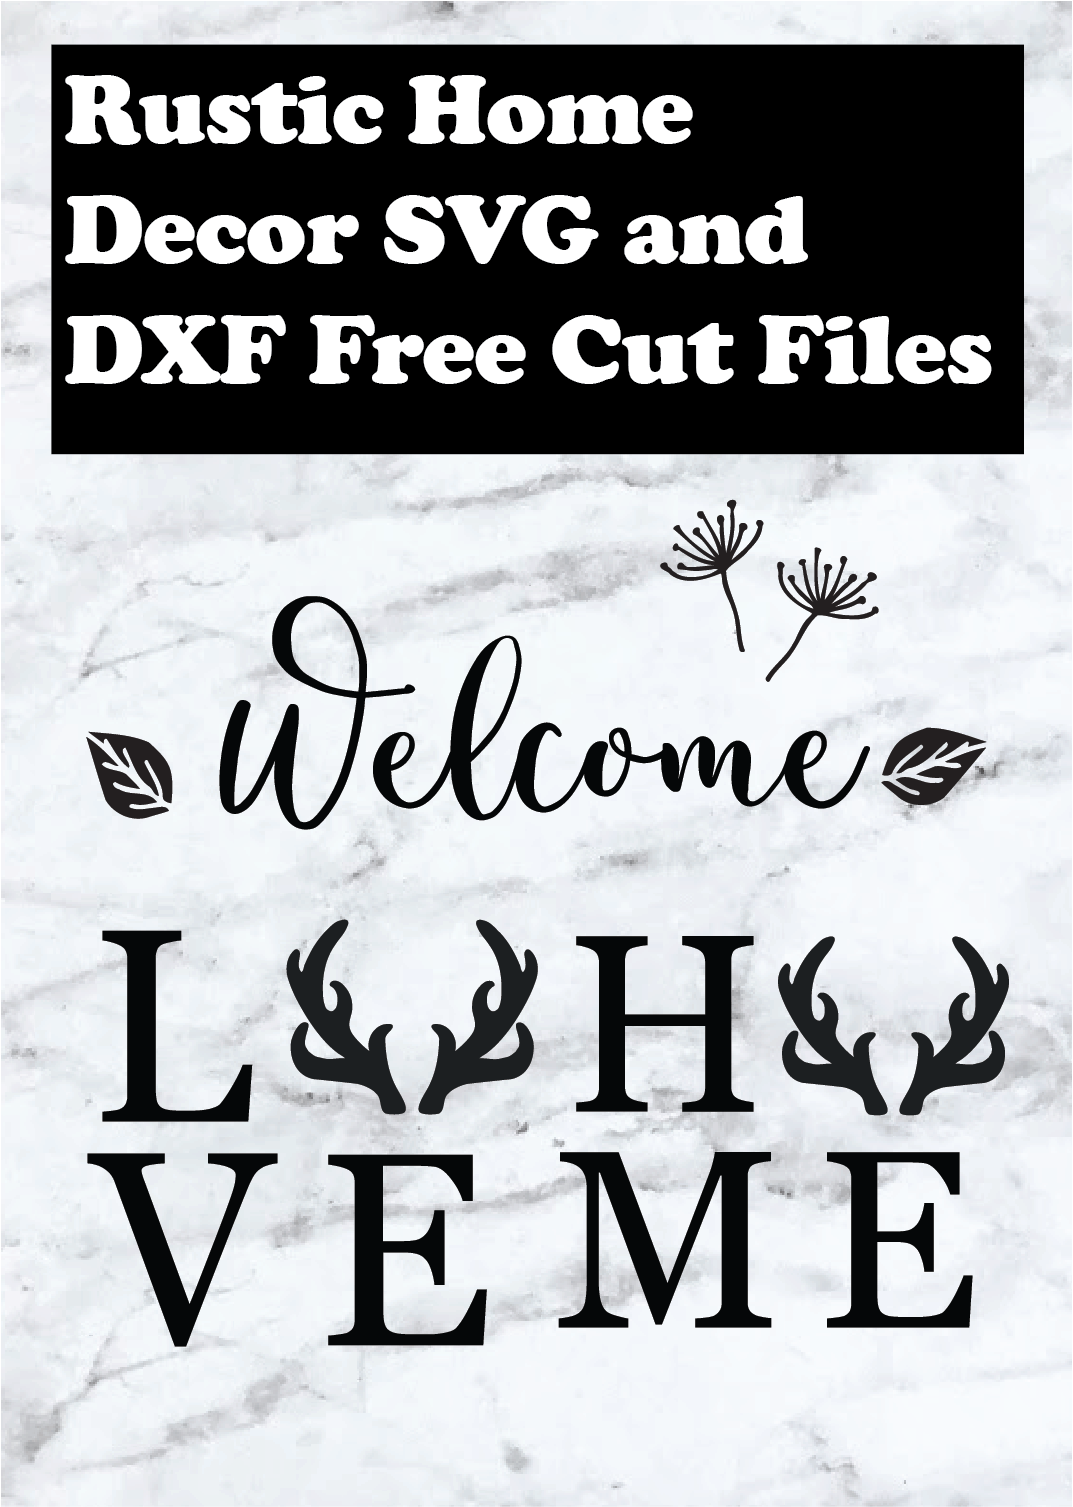 Download 200+ Cricut Projects Free SVGs | Cricut svg files free ...